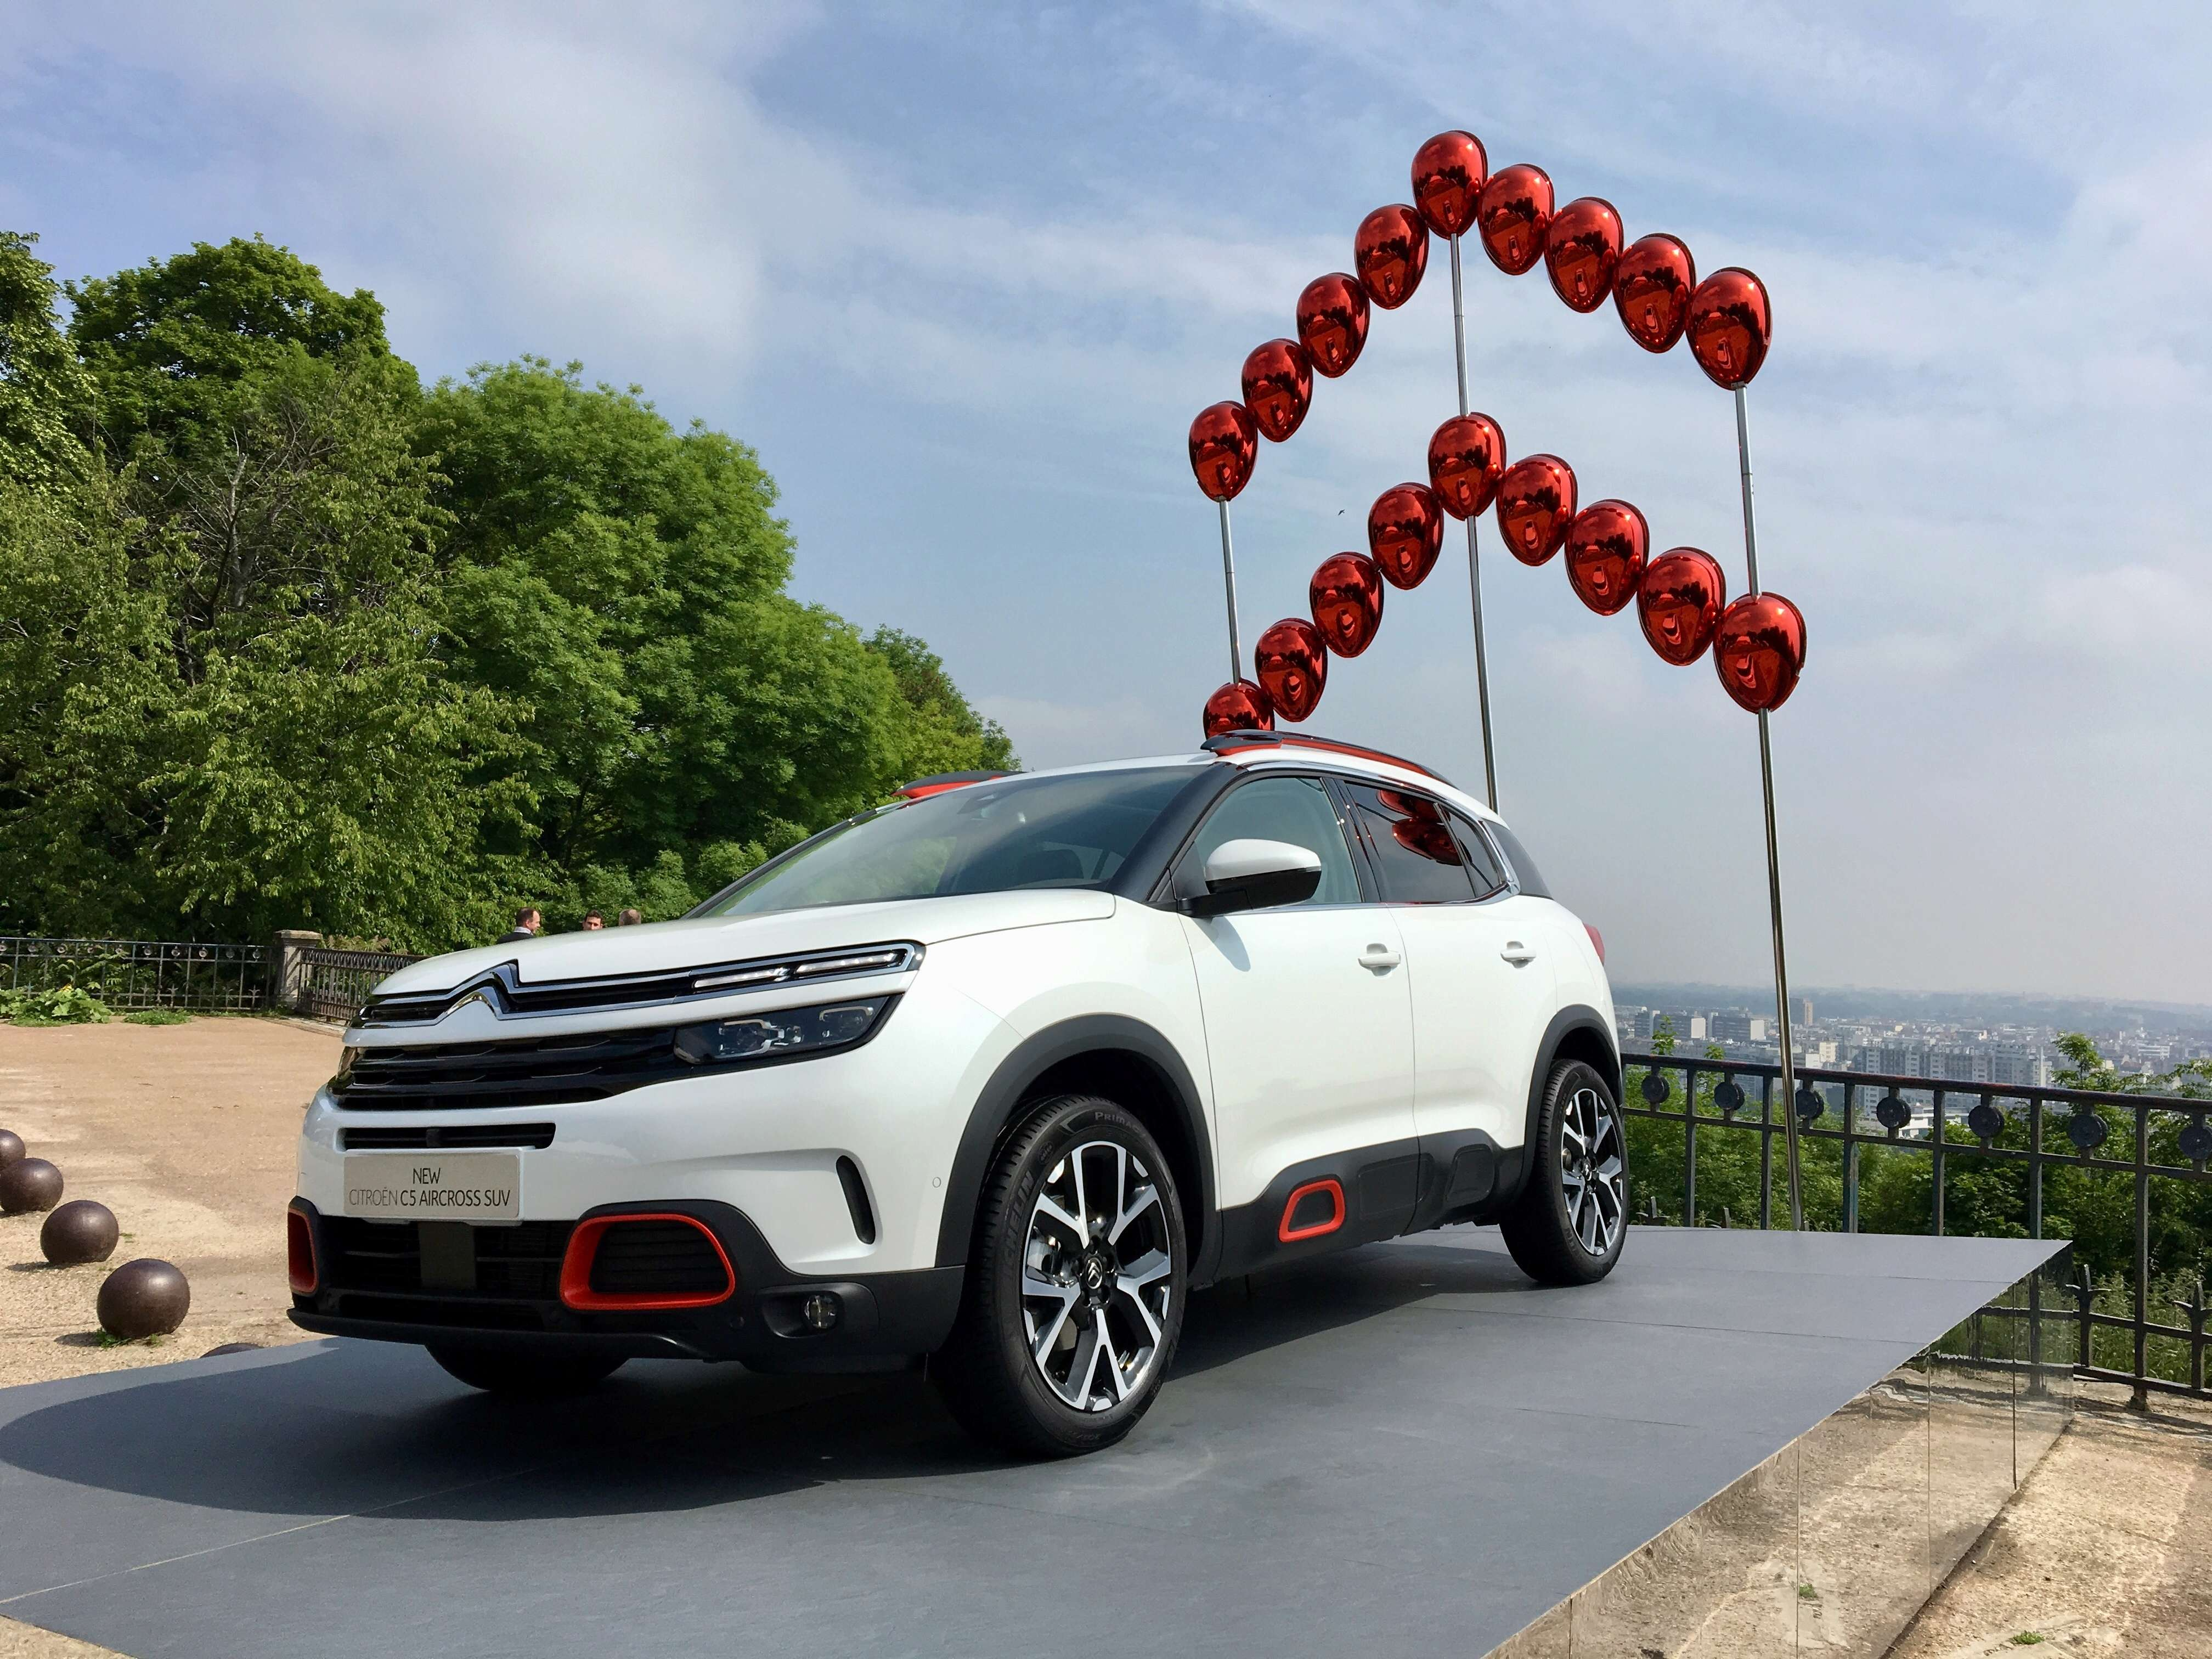 2017 - [Citroën] C5 Aircross [C84] - Page 38 1abe2210